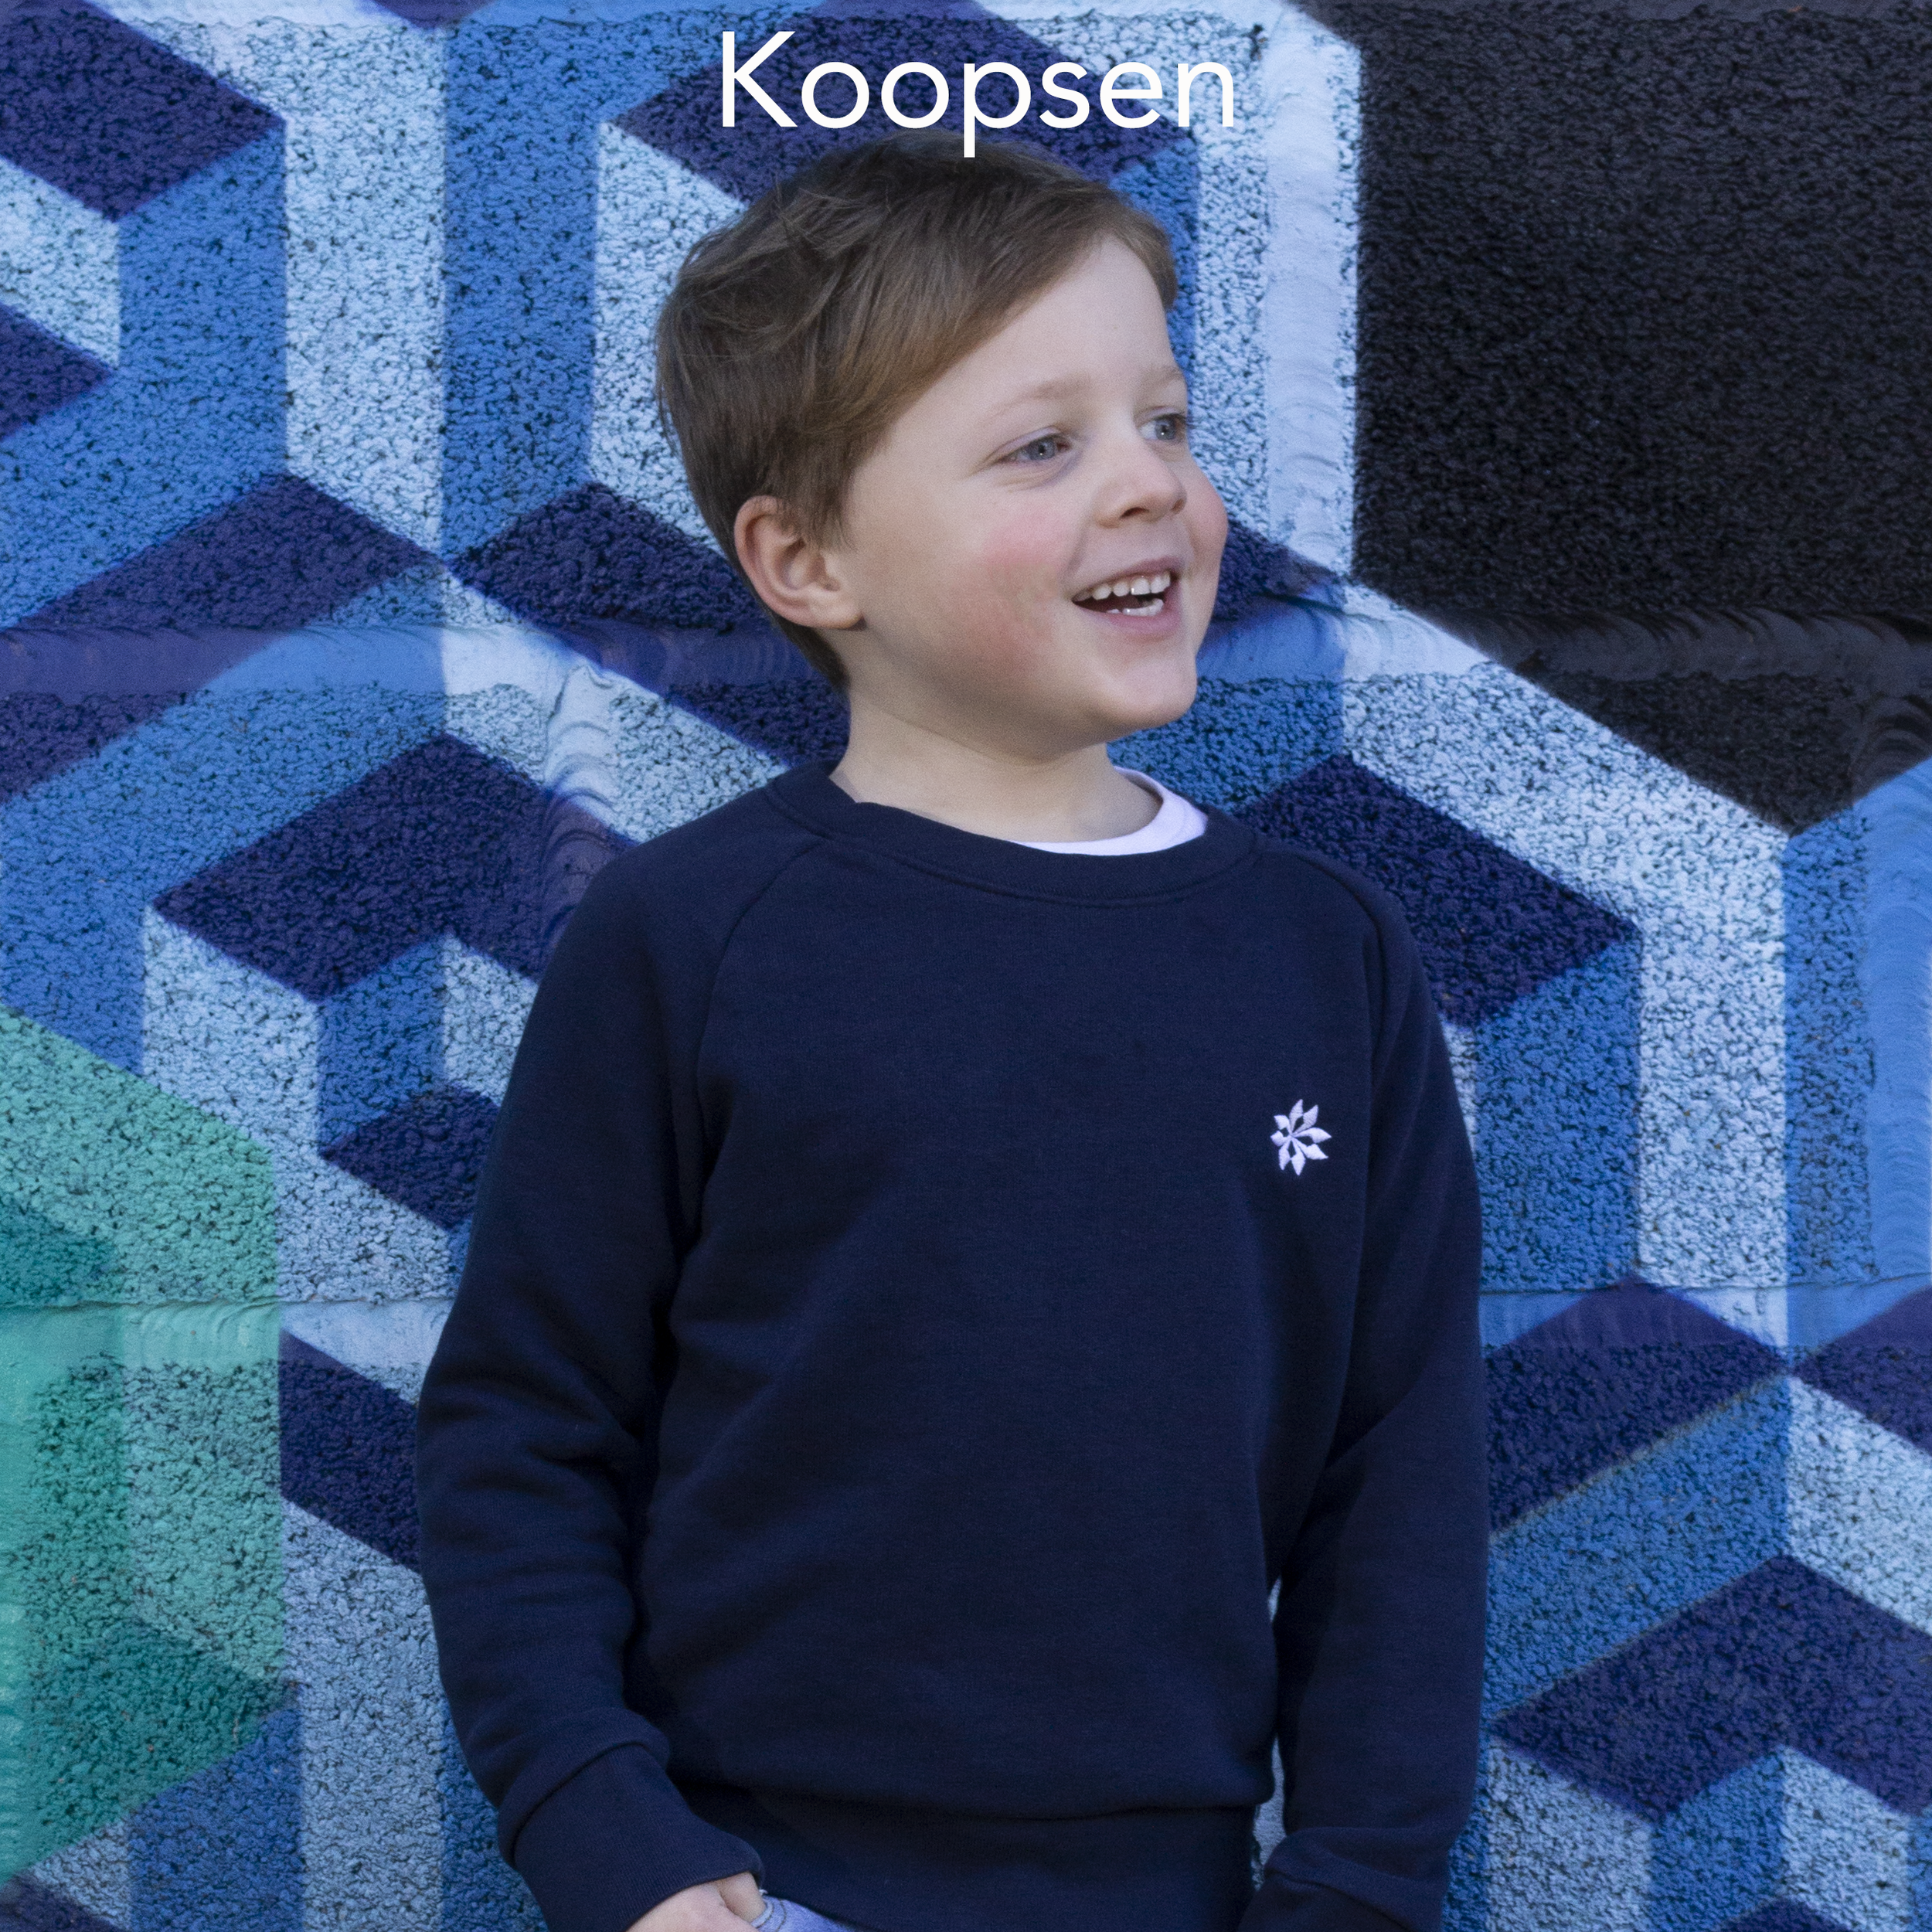 Koopsen unisex sustainable kids clothing